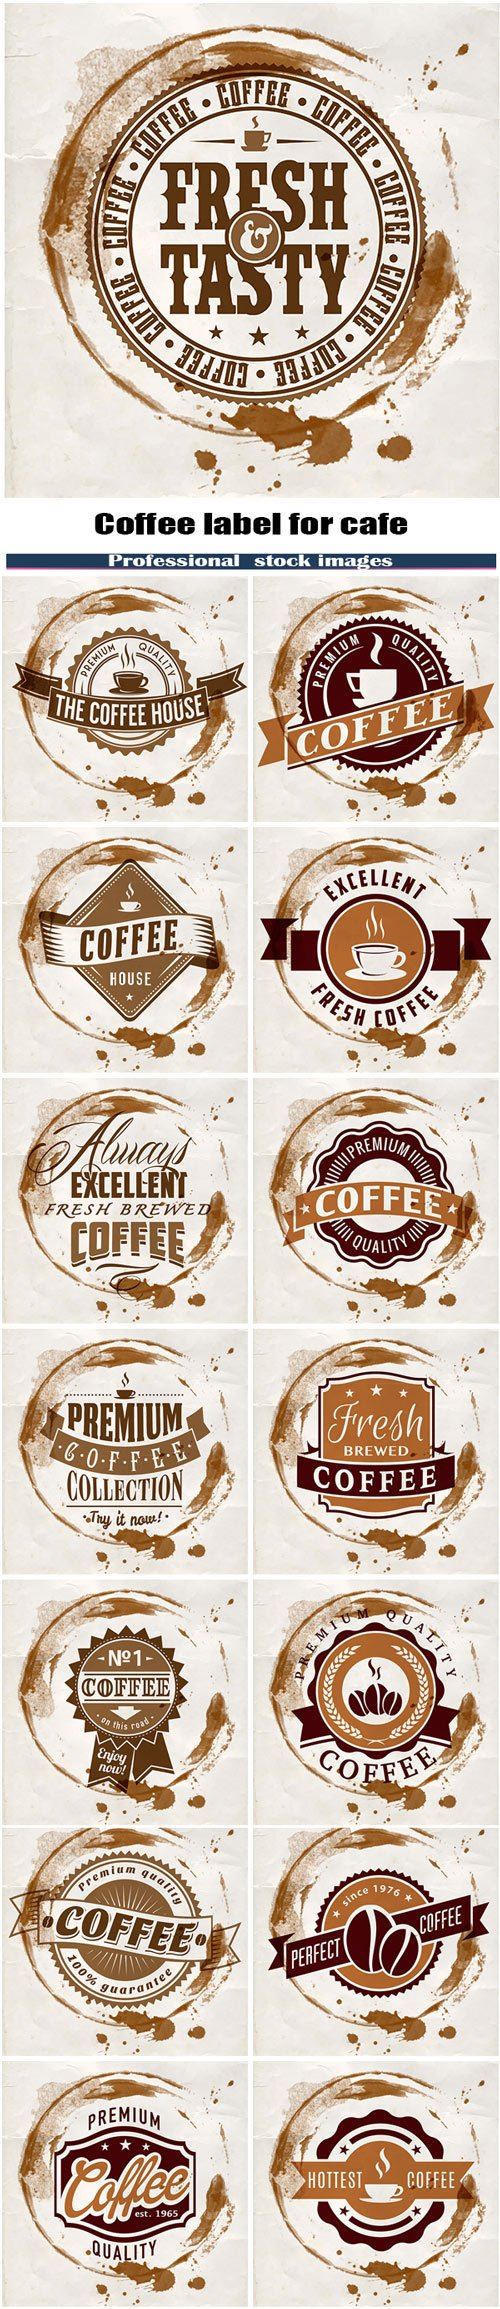 Coffee label for cafe